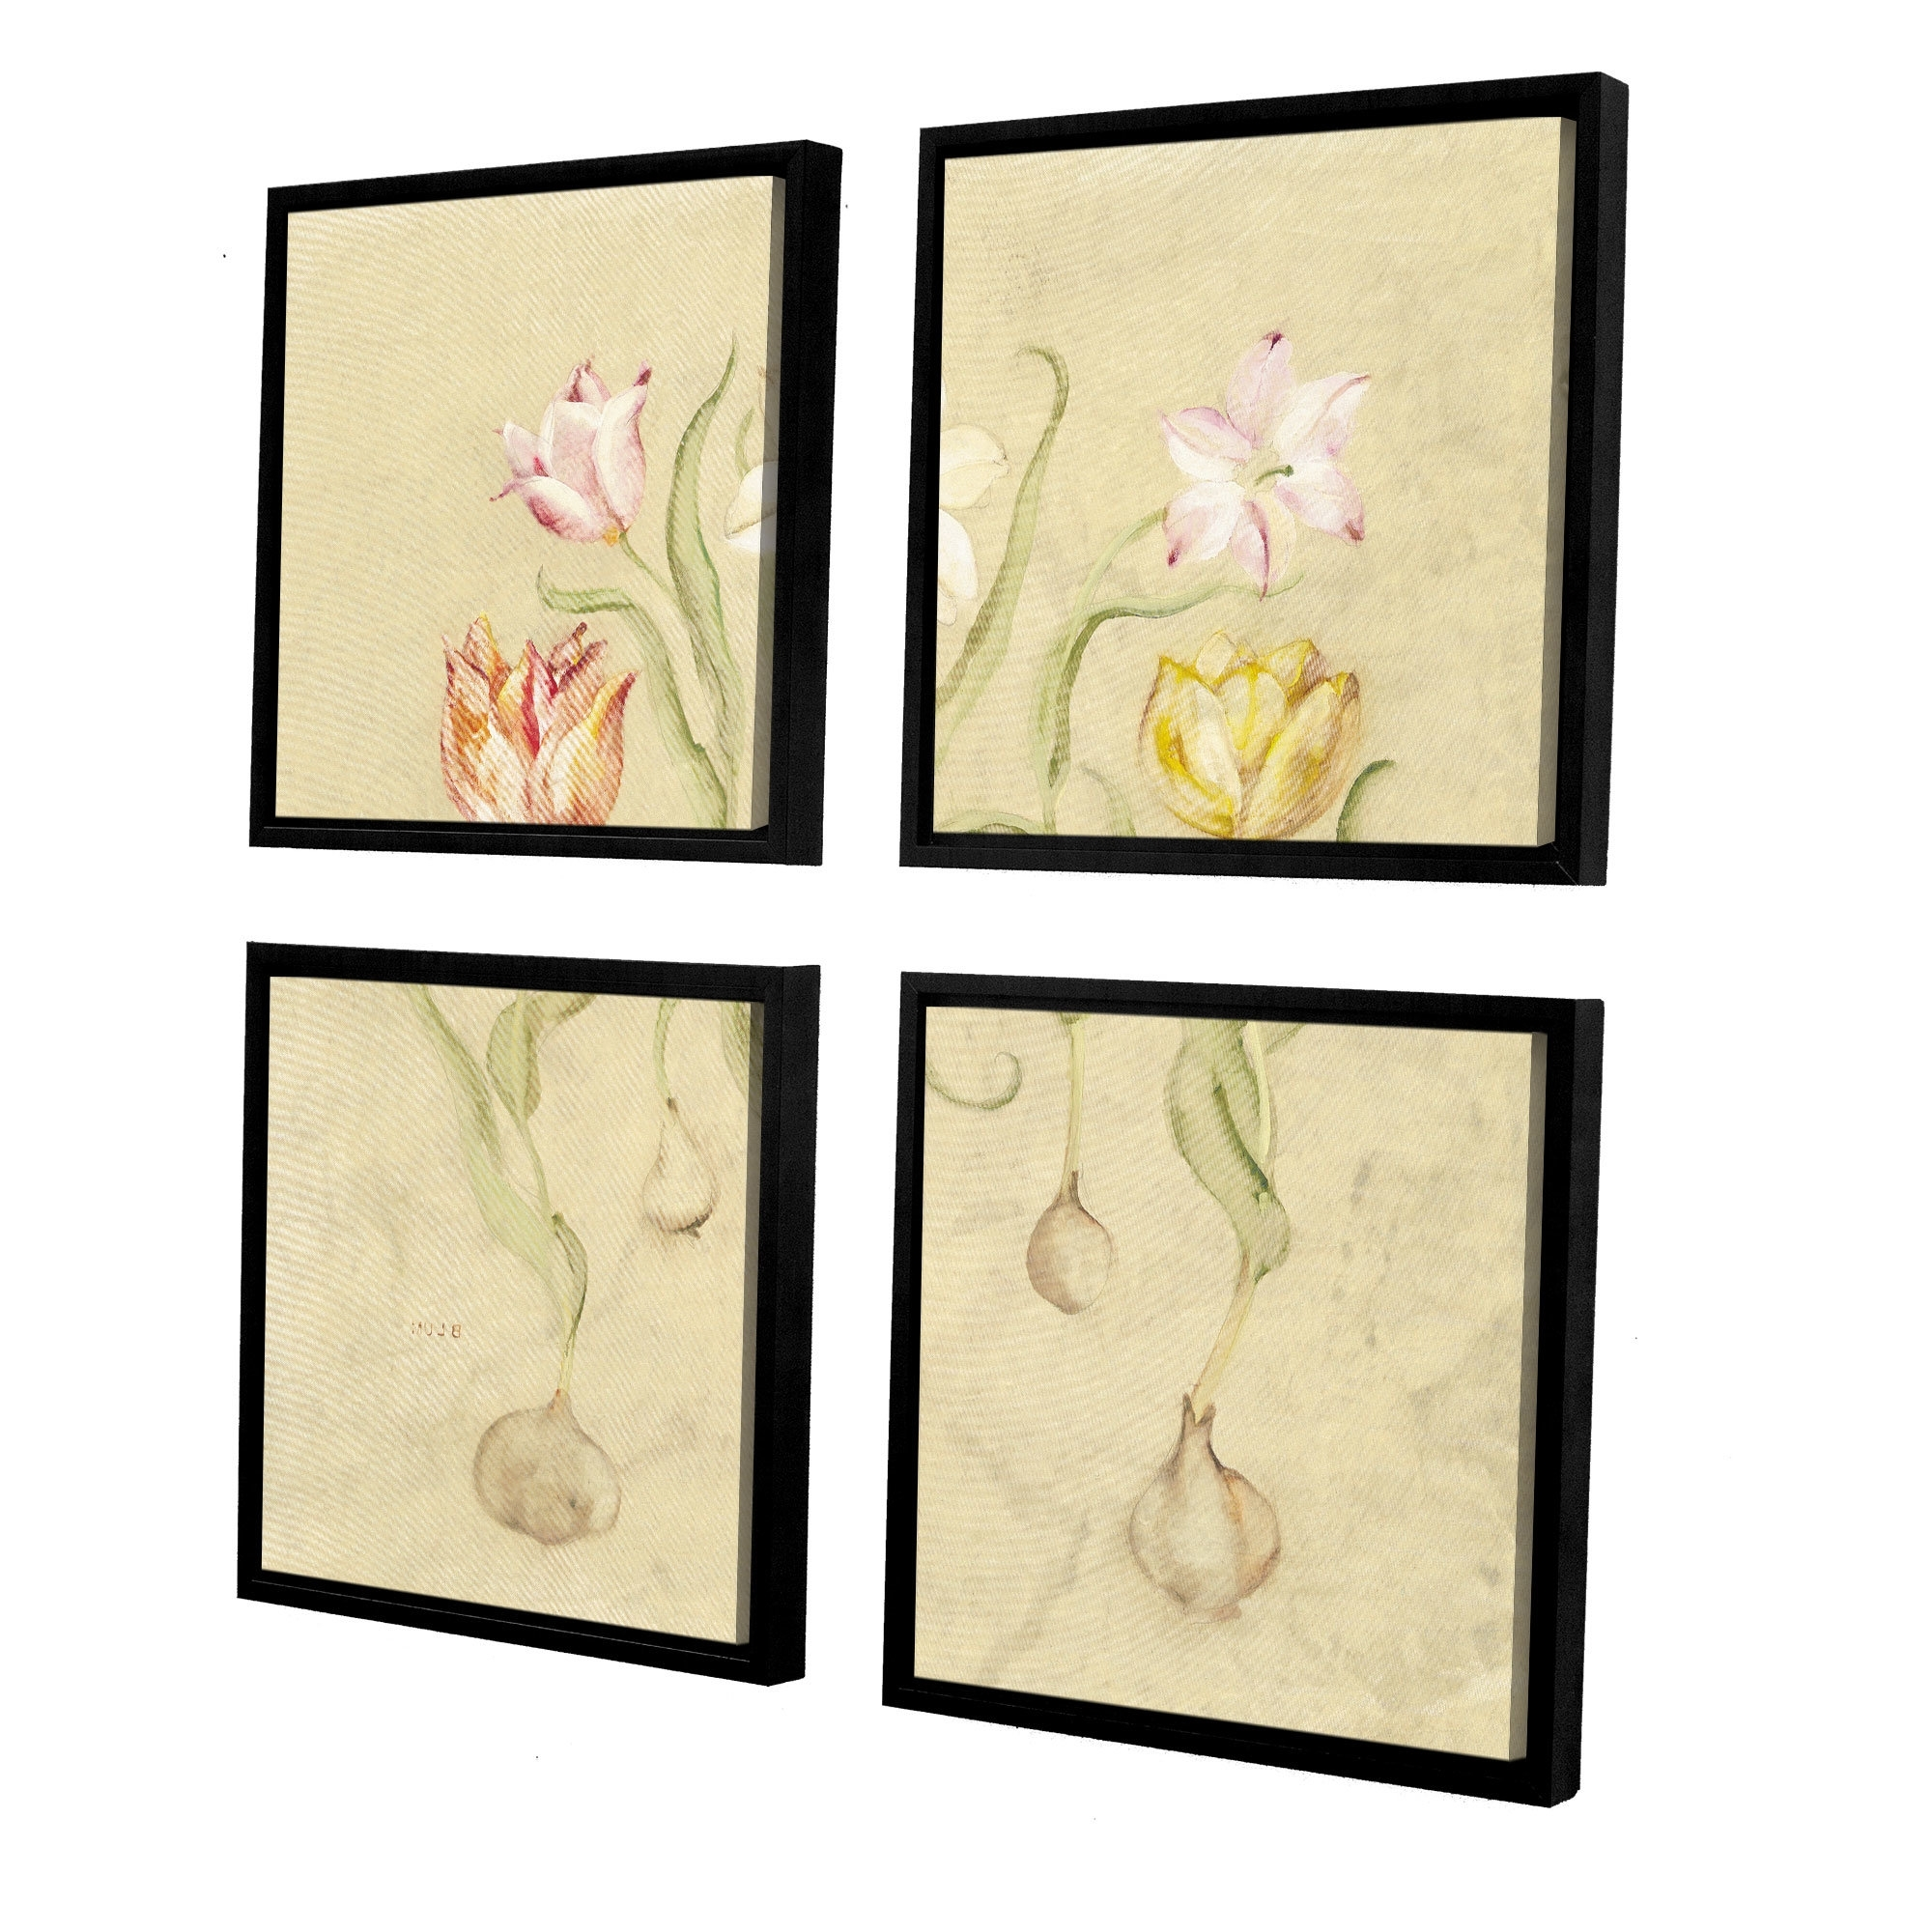 Cheri Blum Framed Art Prints Pertaining To Recent Artwall 'dancing Bulbs I'cheri Blum 4 Piece Framed (View 7 of 15)